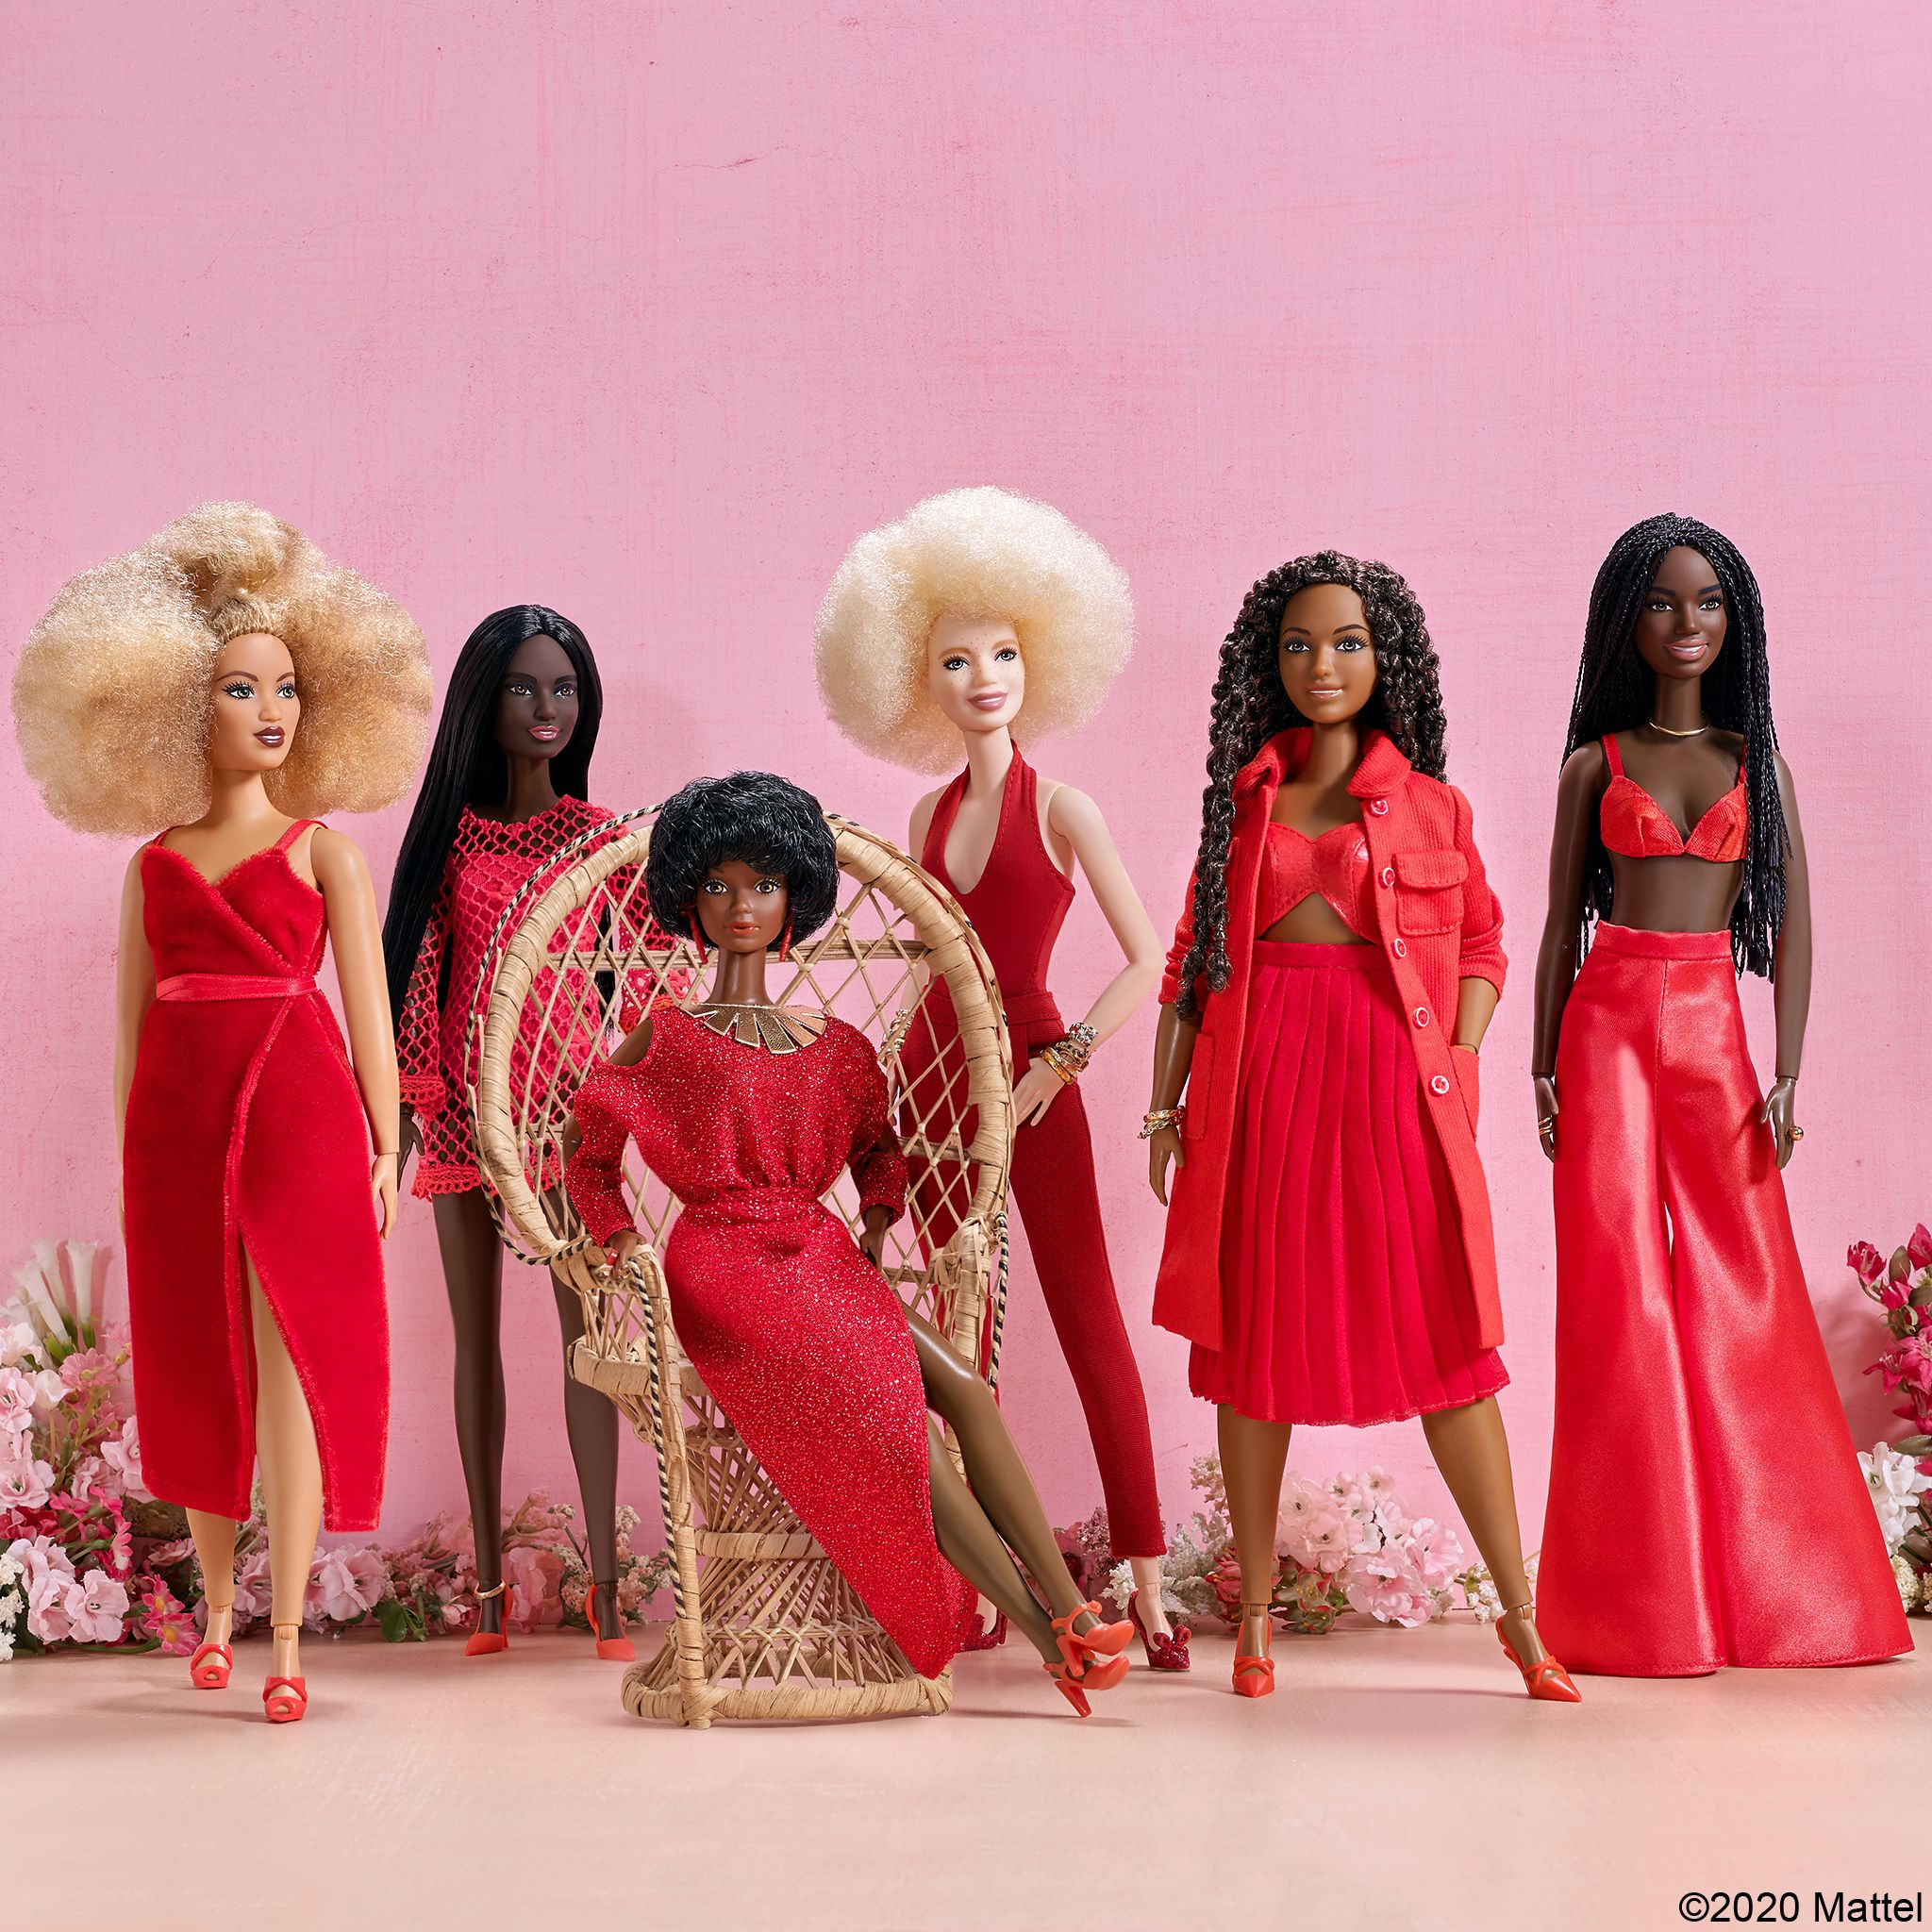 New Barbie Collection Celebrates Black Beauty